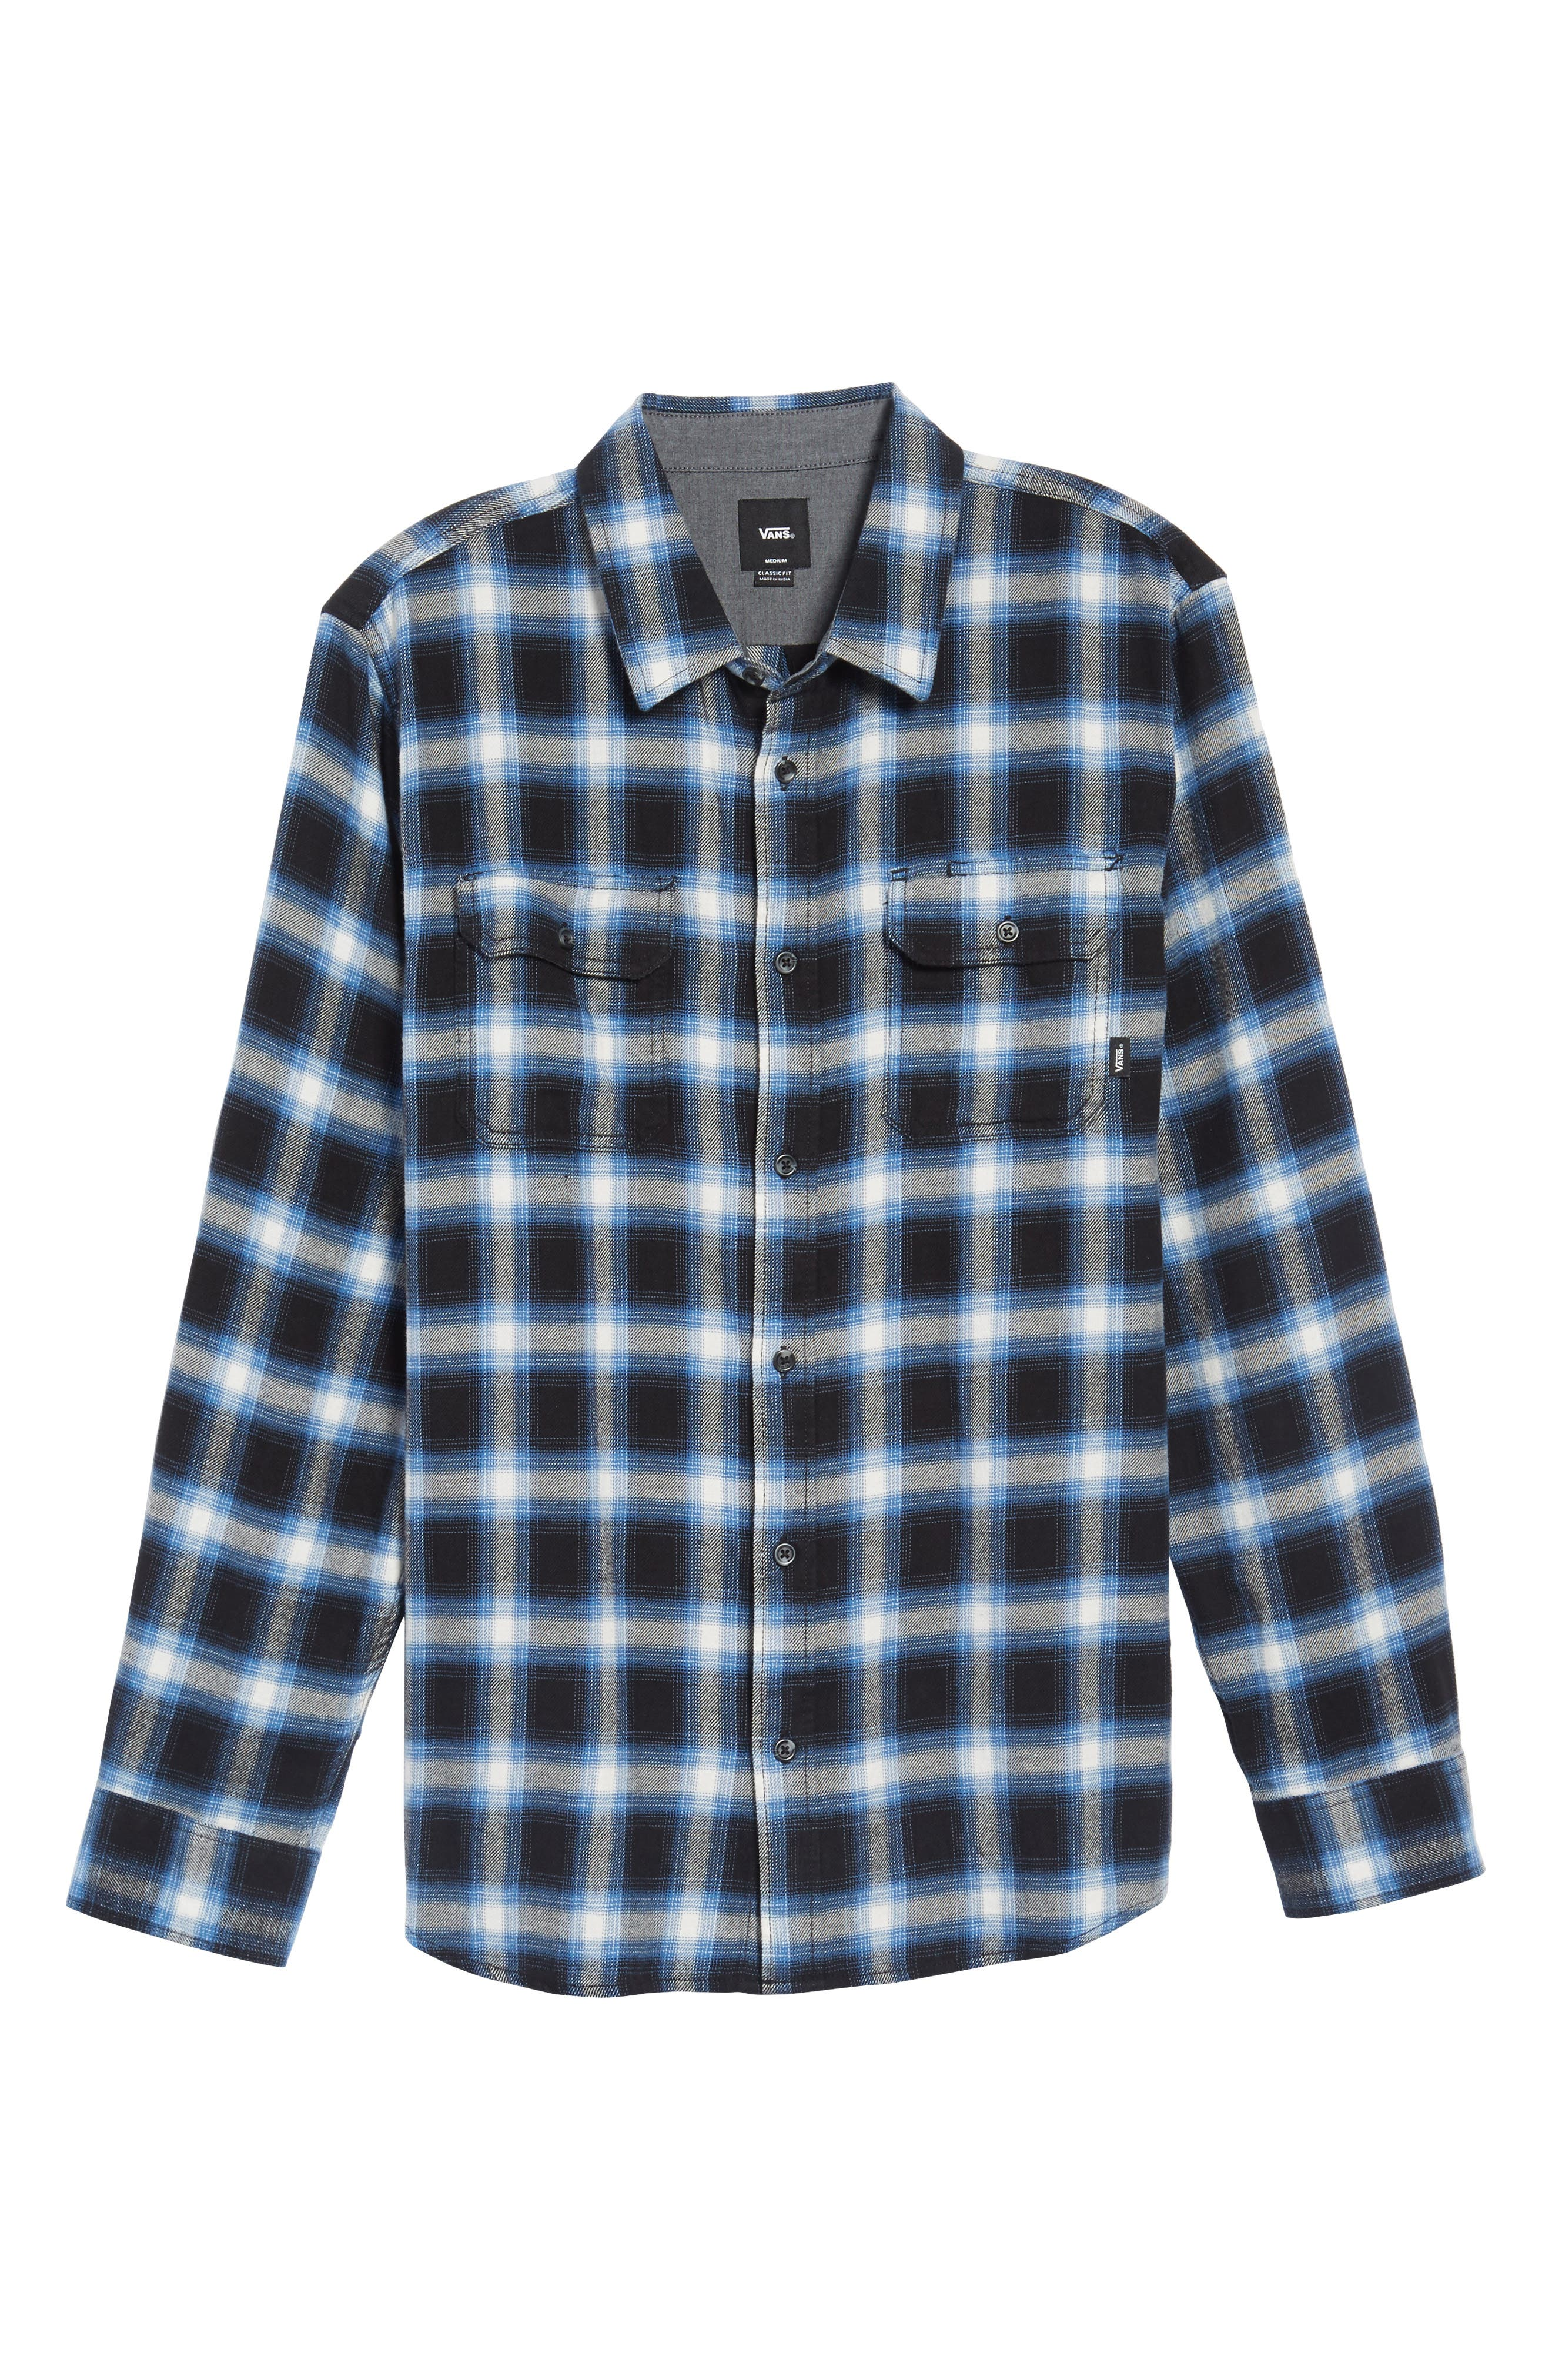 Beachwood Flannel Shirt,                             Alternate thumbnail 6, color,                             Black/ Delft